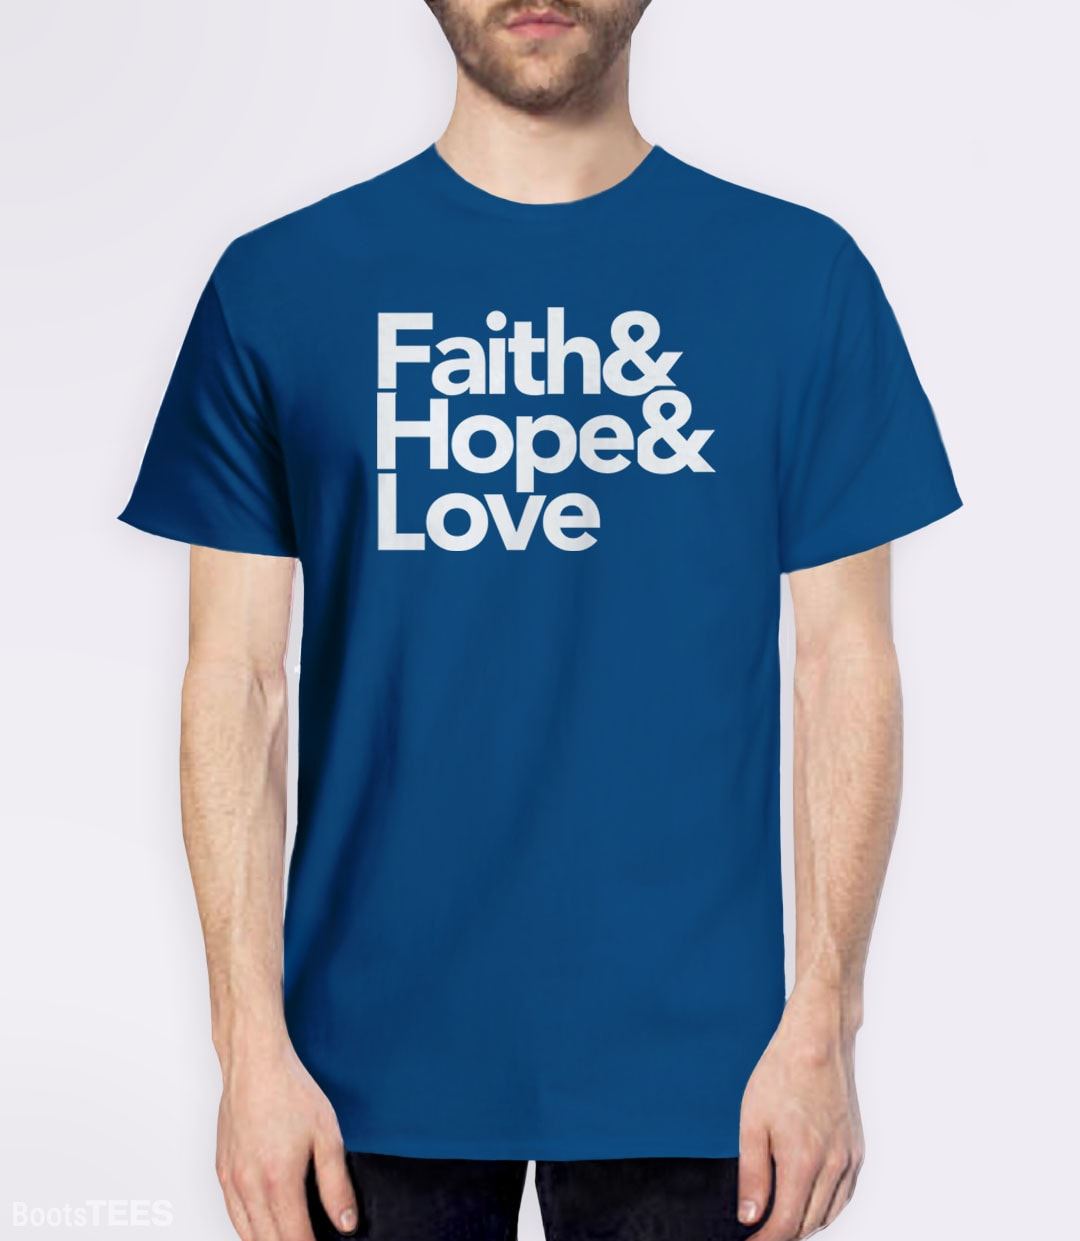 Faith & Hope & Love, Royal Blue Mens (Unisex) Tee by BootsTees